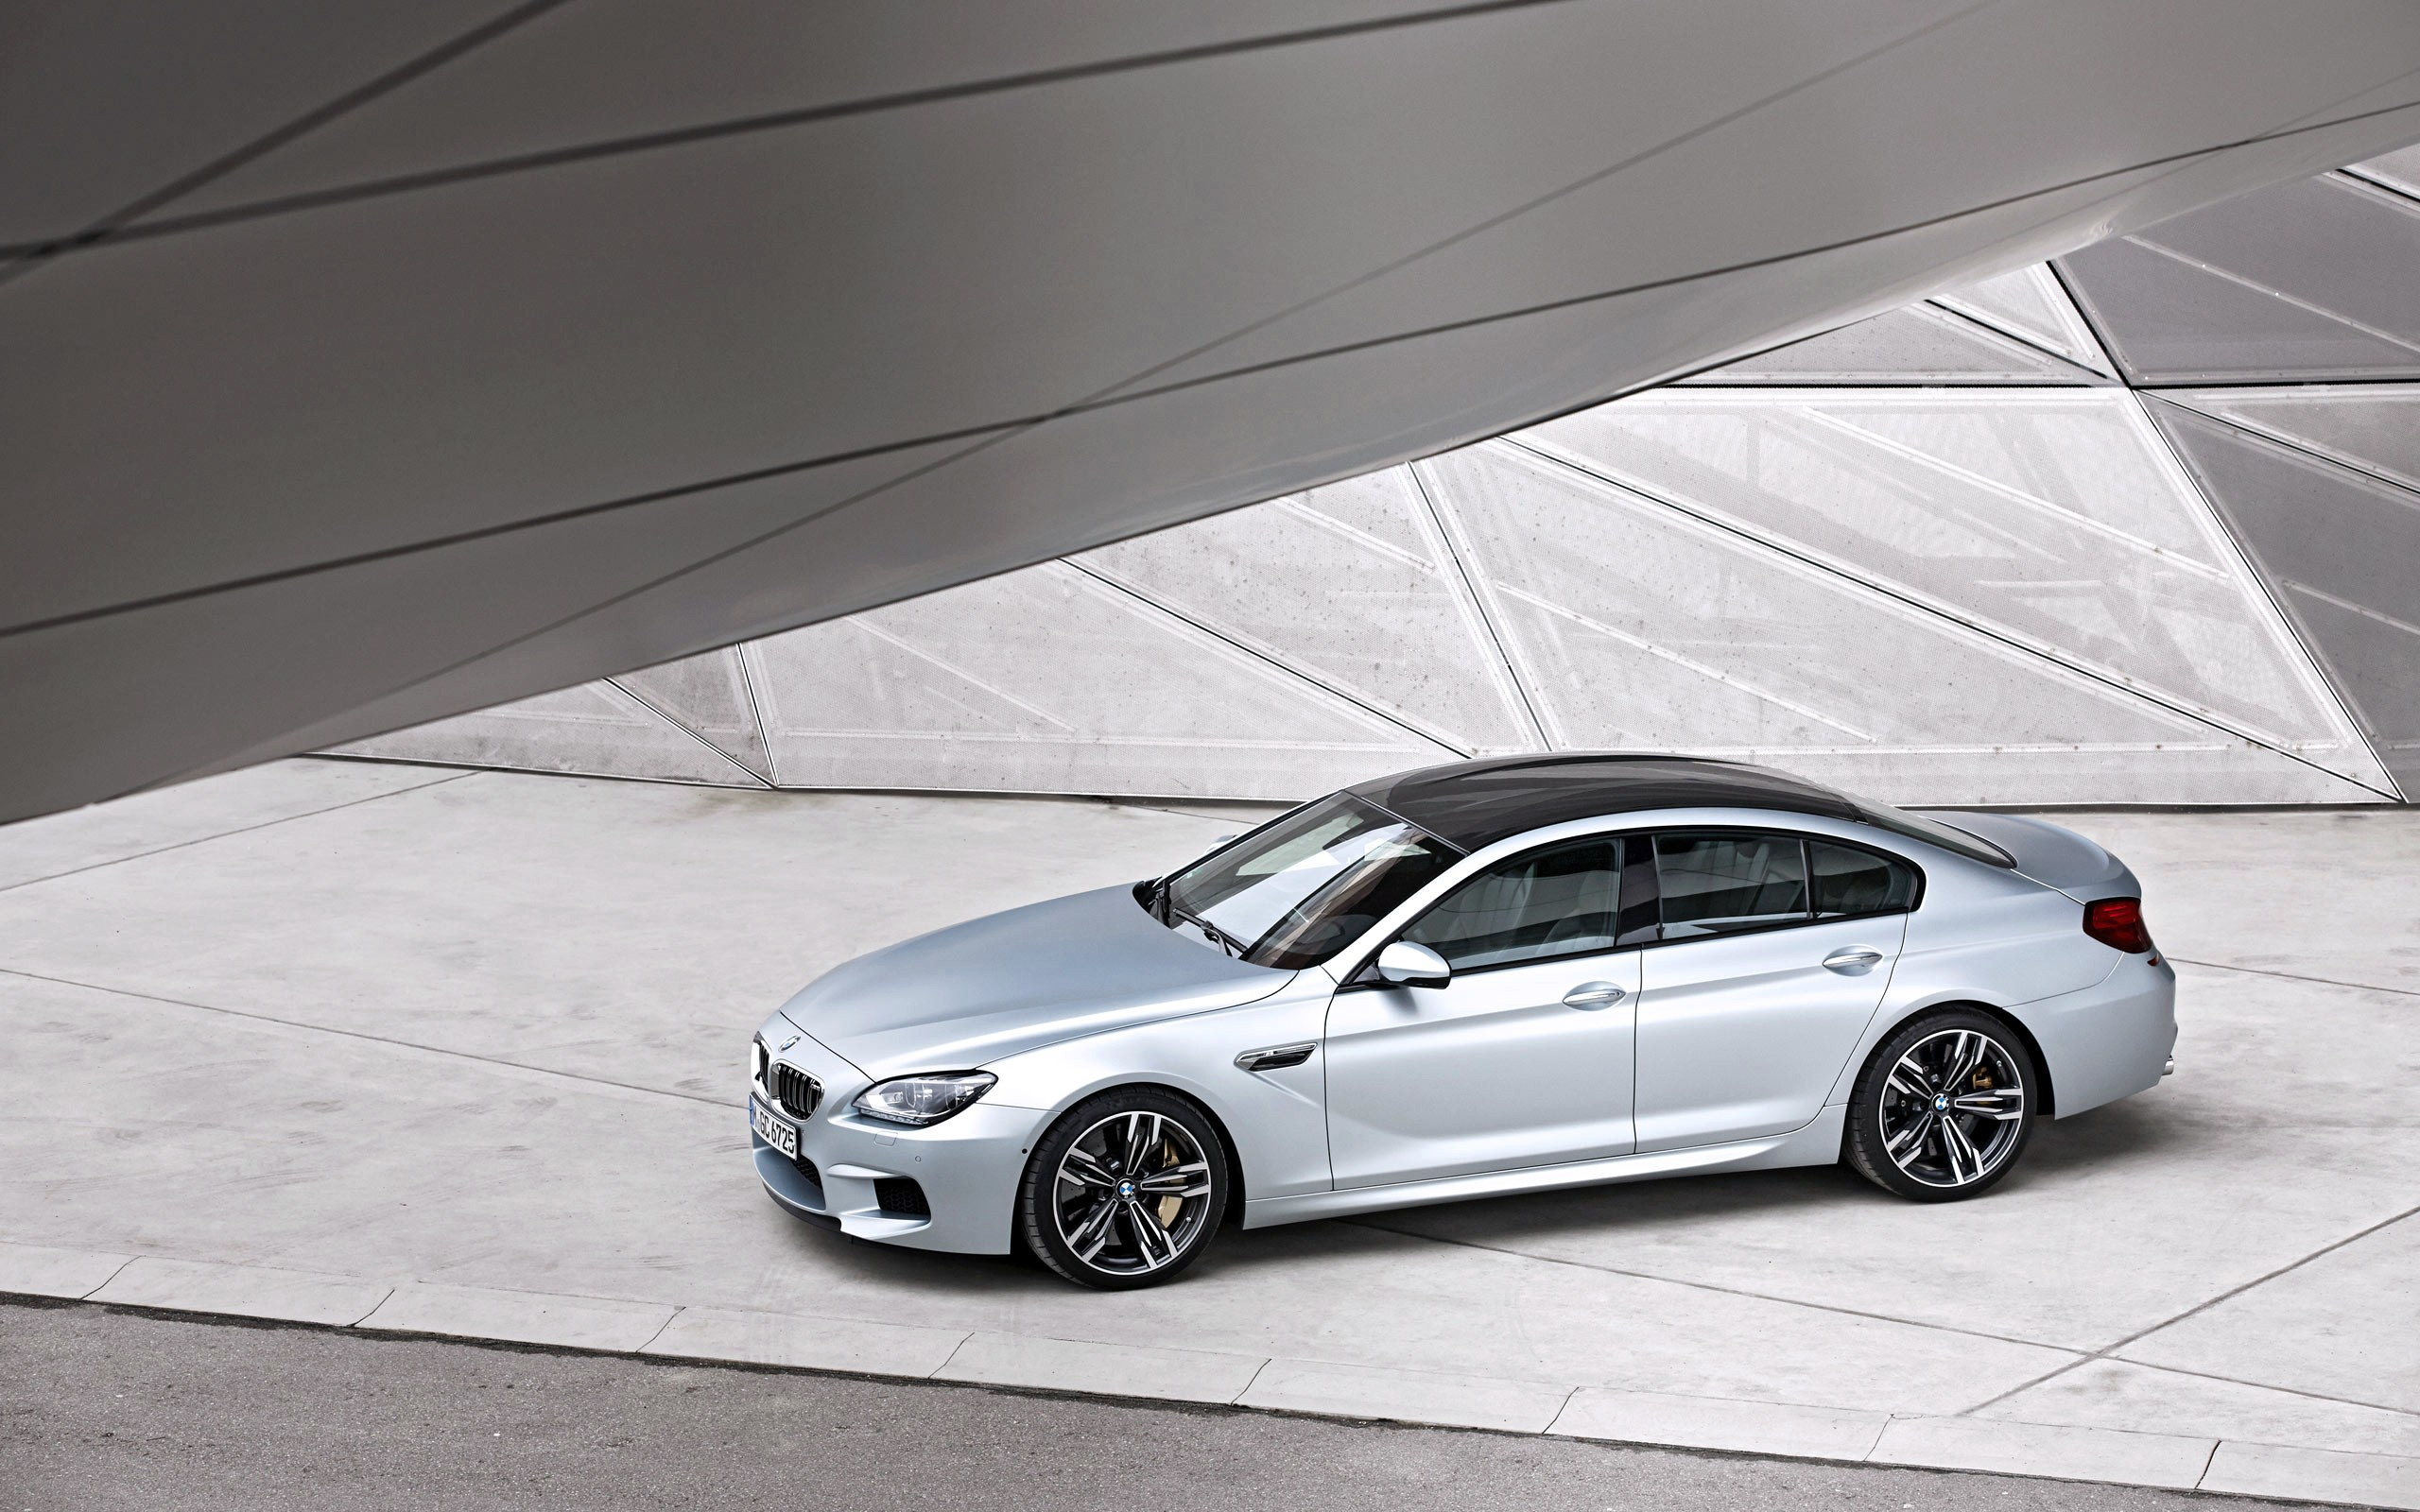 Daily Wallpaper: BMW M6 Gran Coupe | I Like To Waste My Time